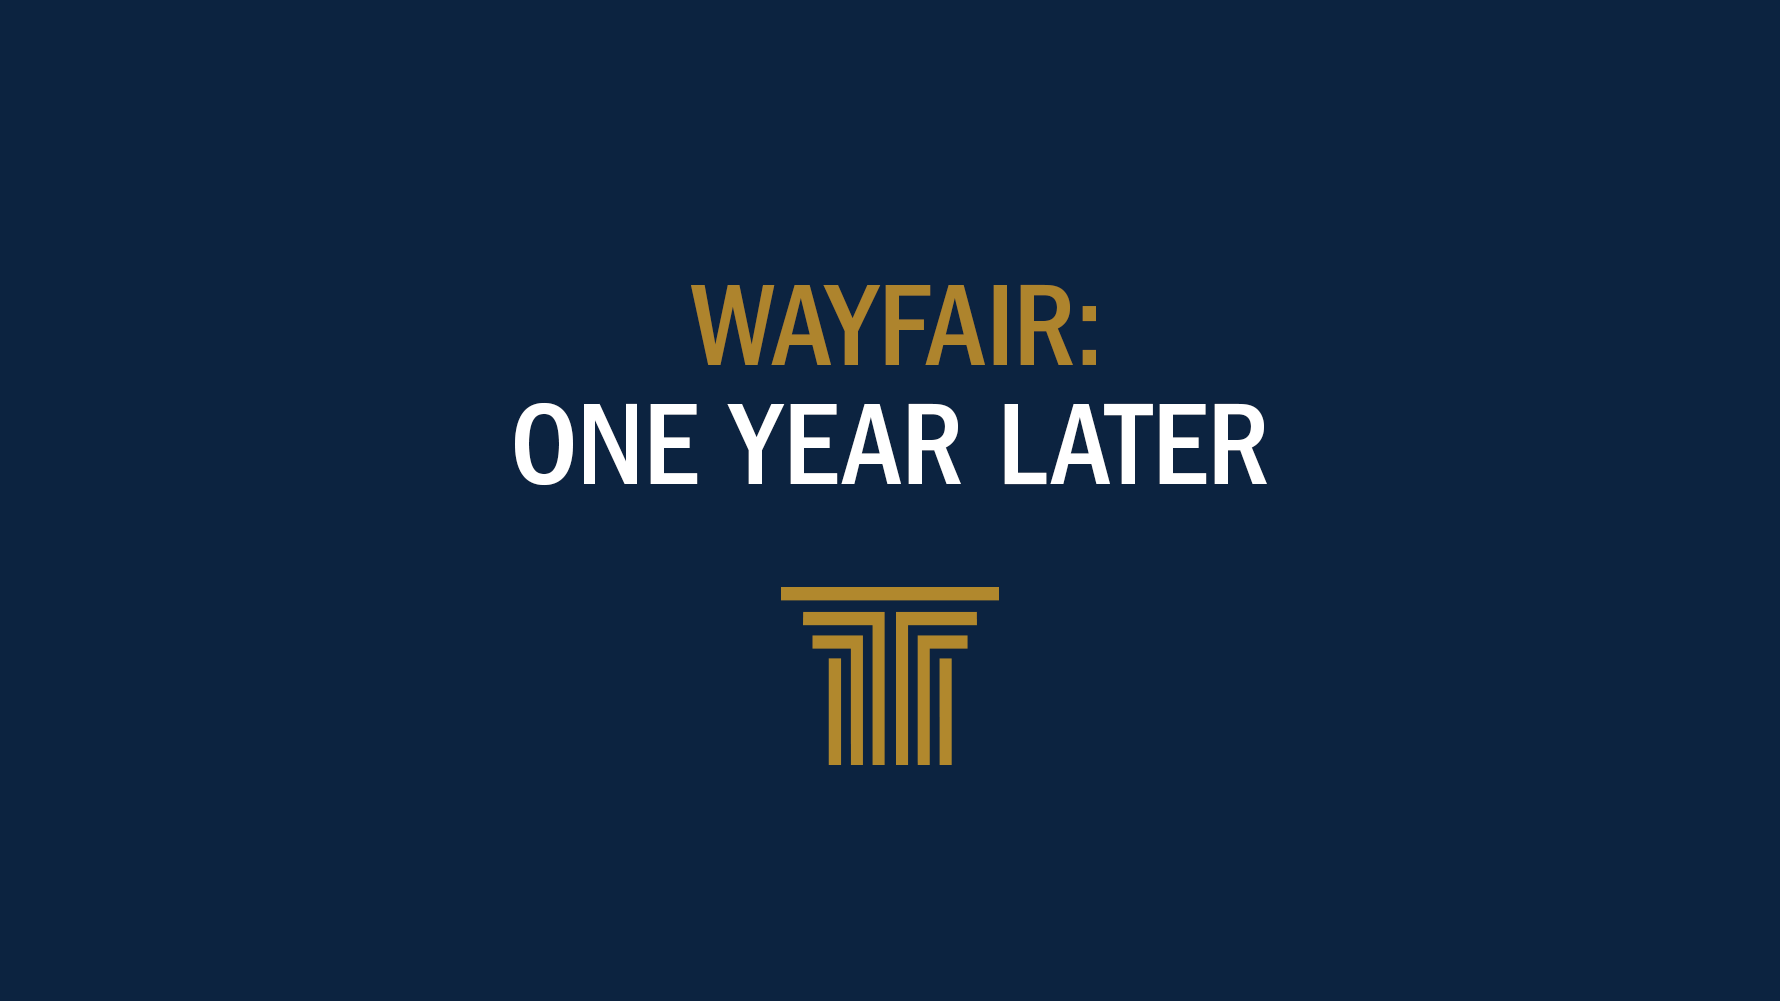 WayFair One year later